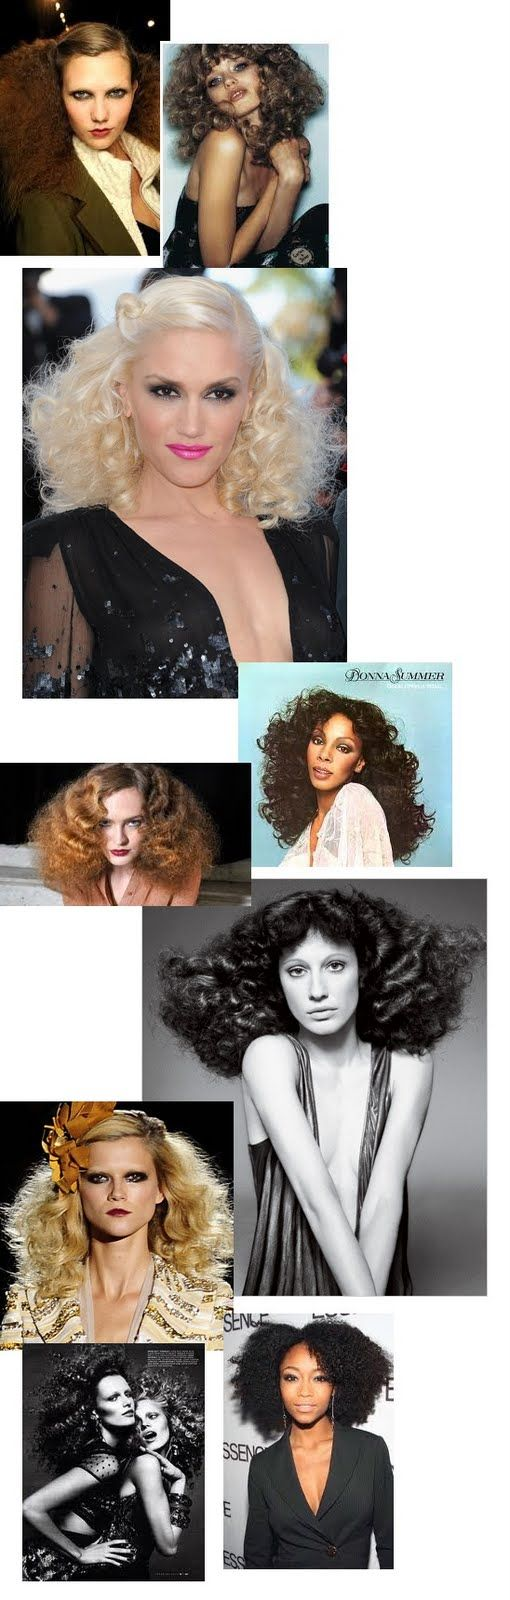 studio 54 hair our story might be talking a turn avenue five fashion show inspiration. Black Bedroom Furniture Sets. Home Design Ideas